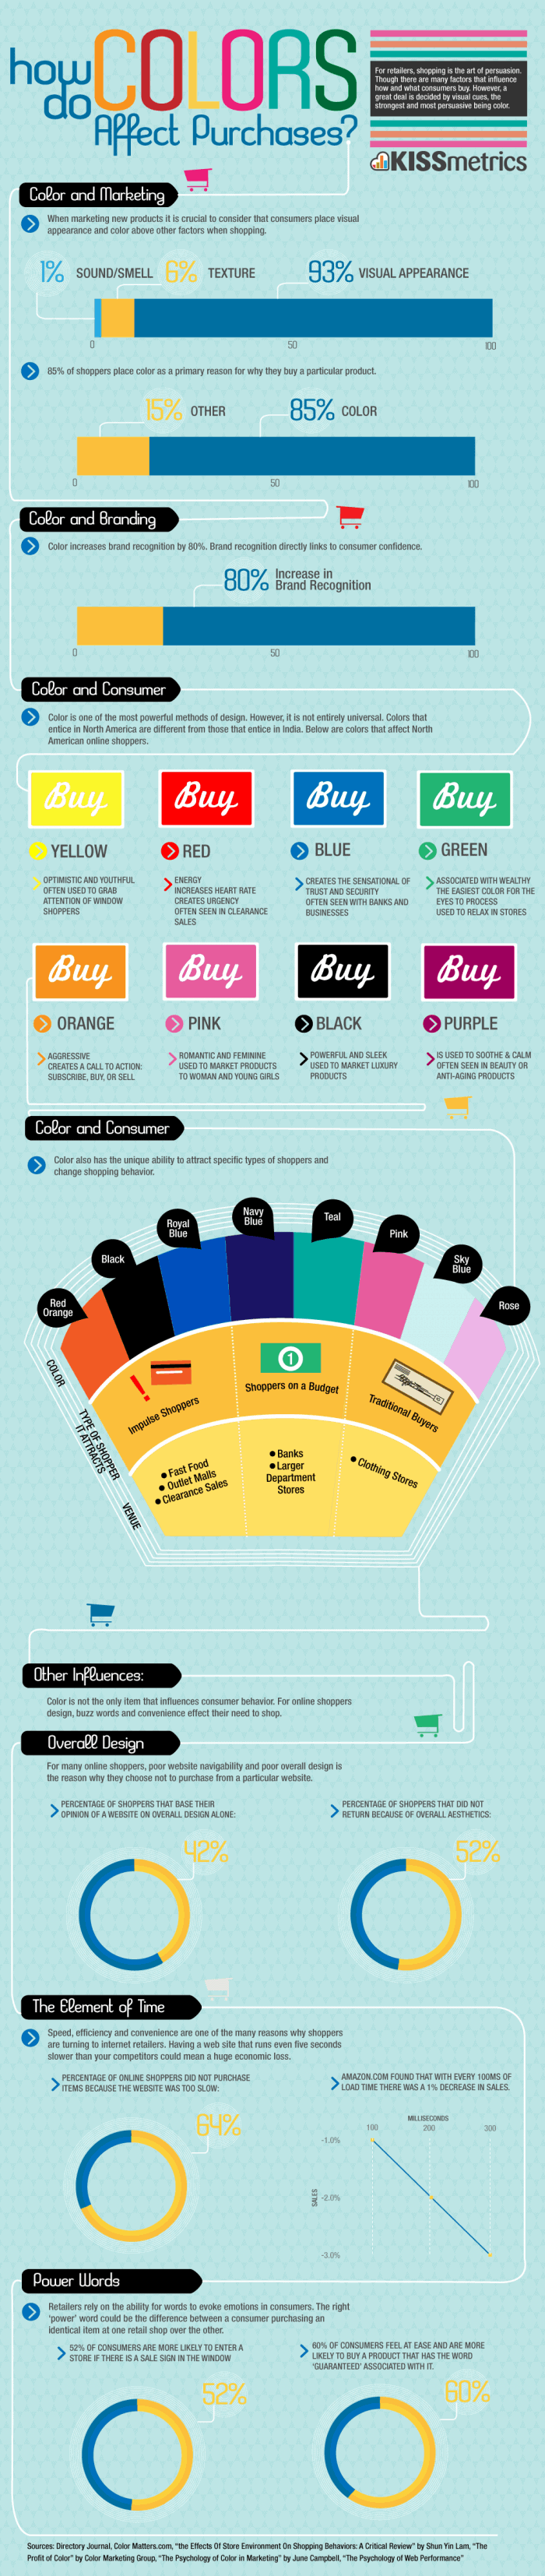 How Color Affects Our Purchases Infographic